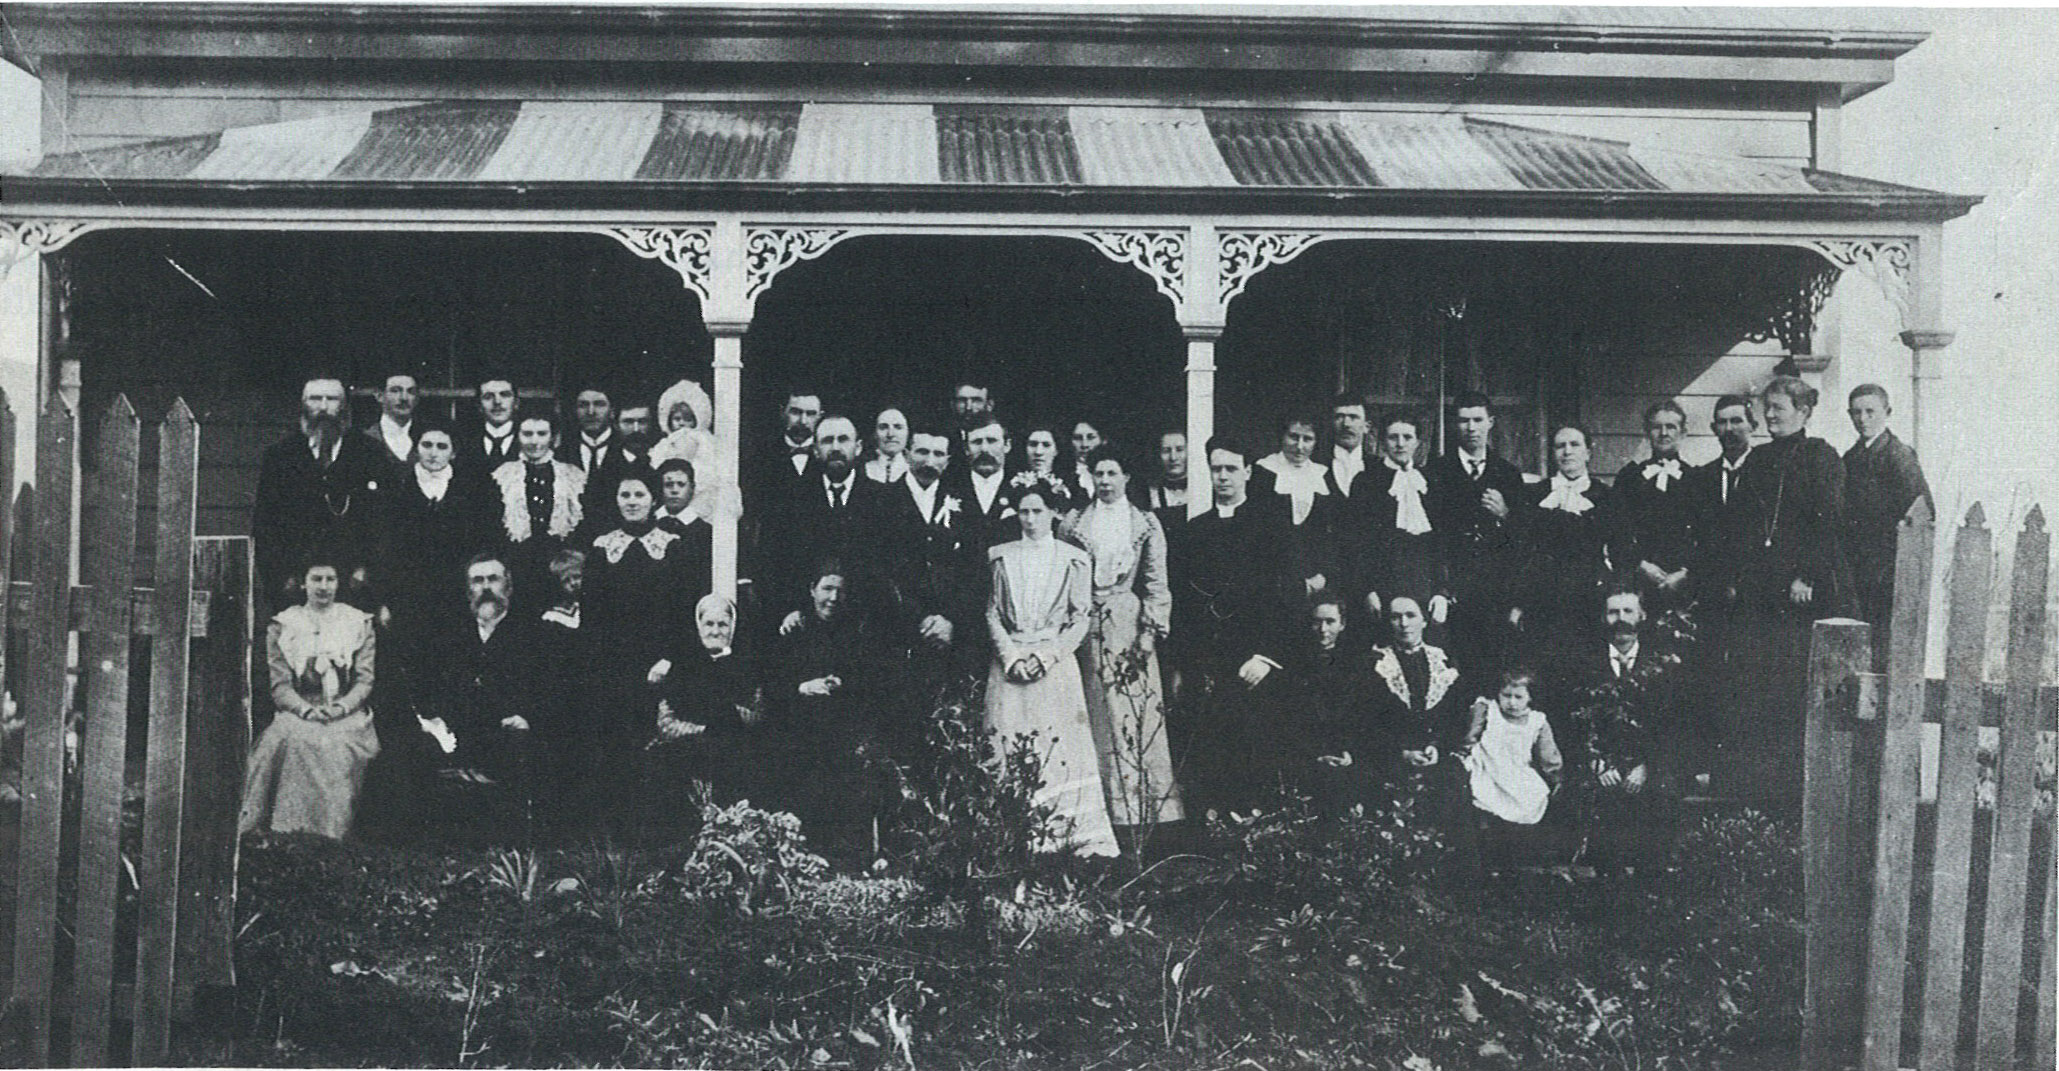 A Shaw Family Wedding about 1895.